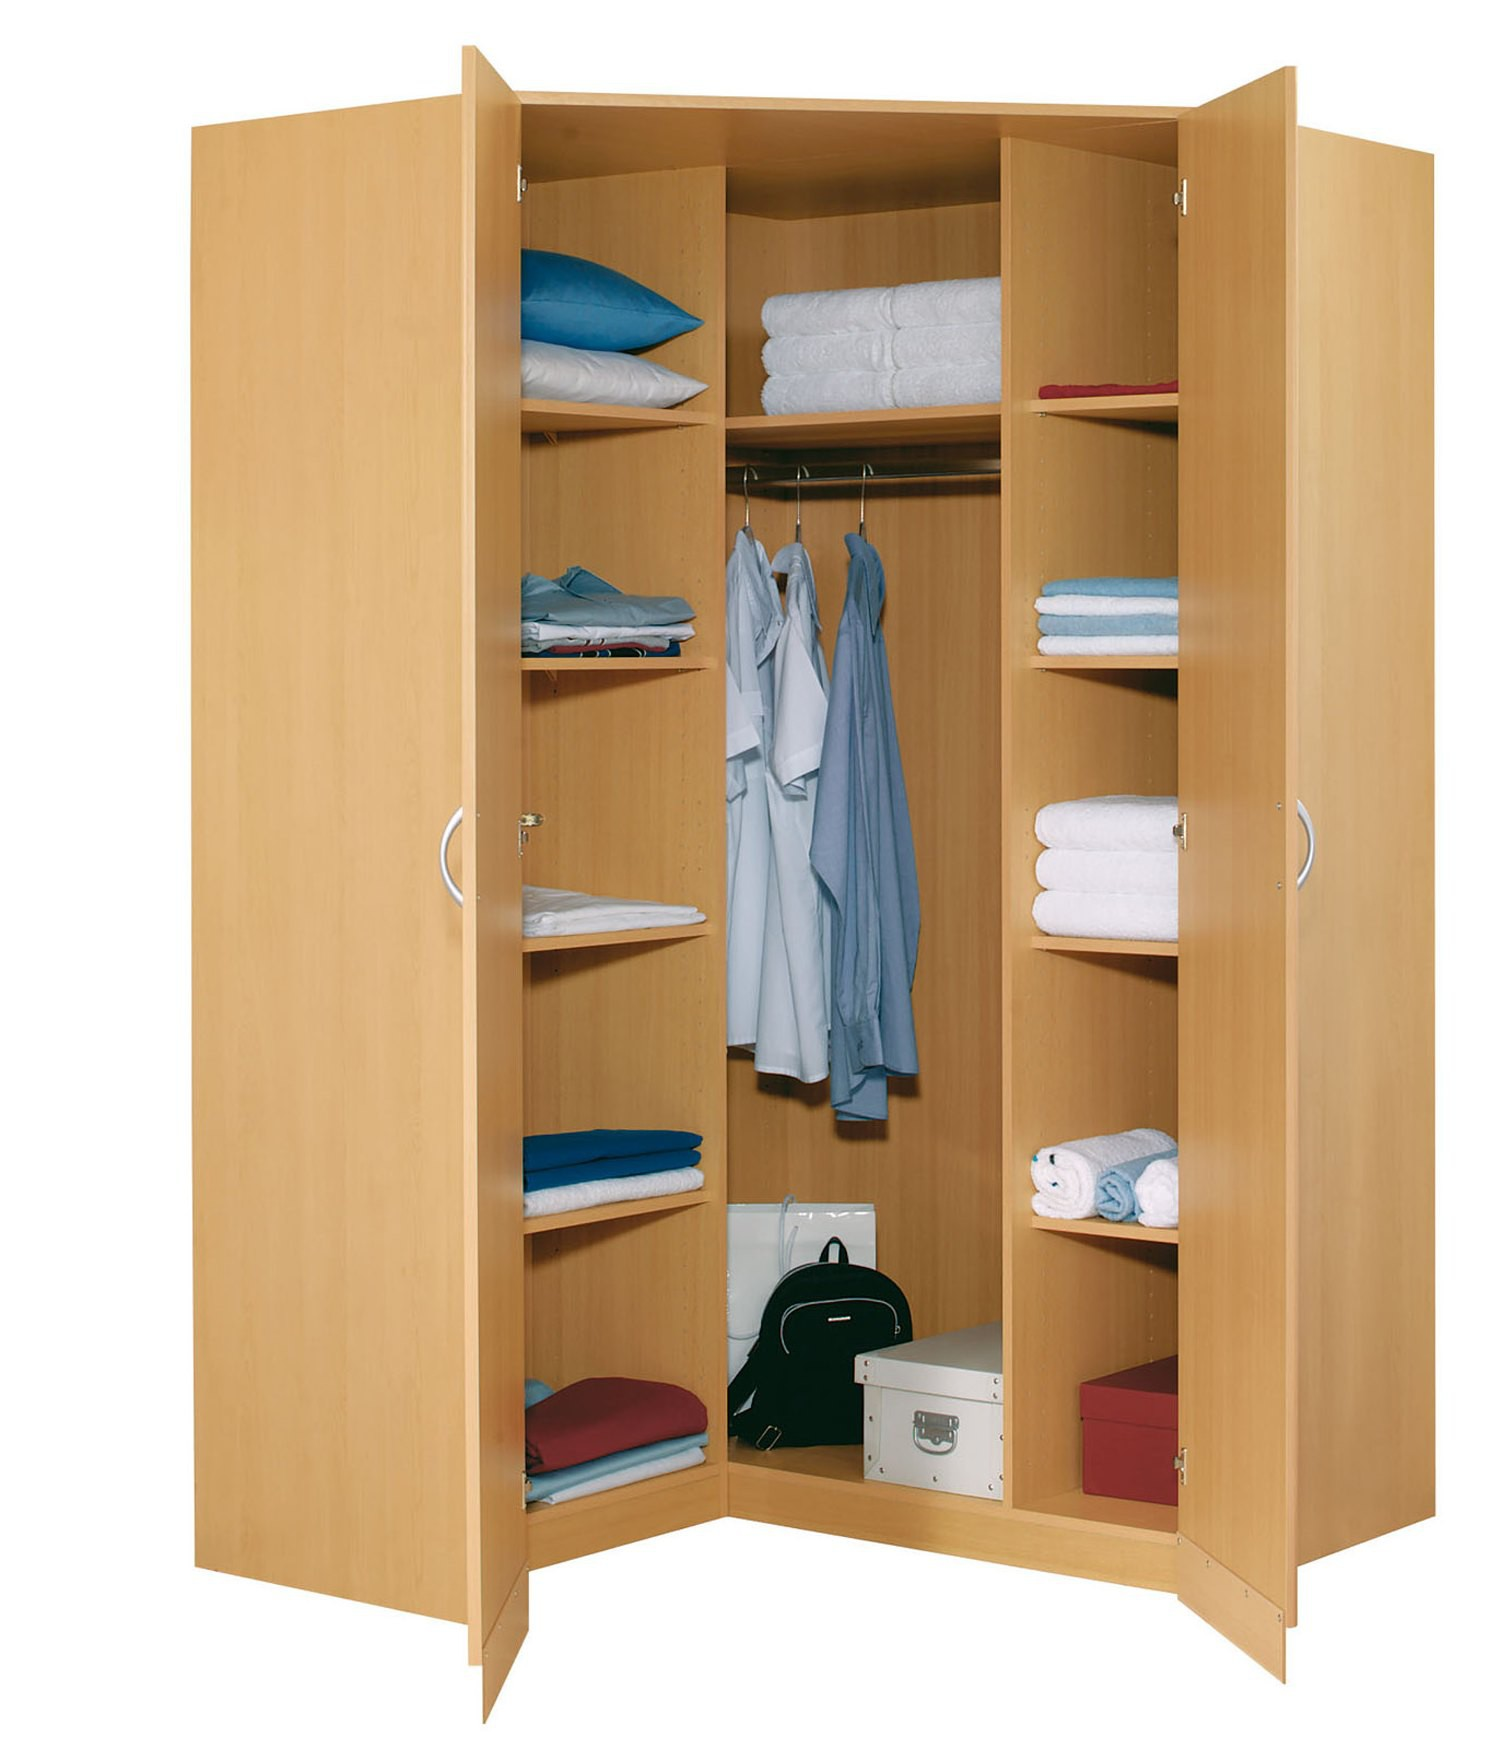 leroy dressing armoire dressing leroy merlin nice petite with leroy dressing usm modular. Black Bedroom Furniture Sets. Home Design Ideas